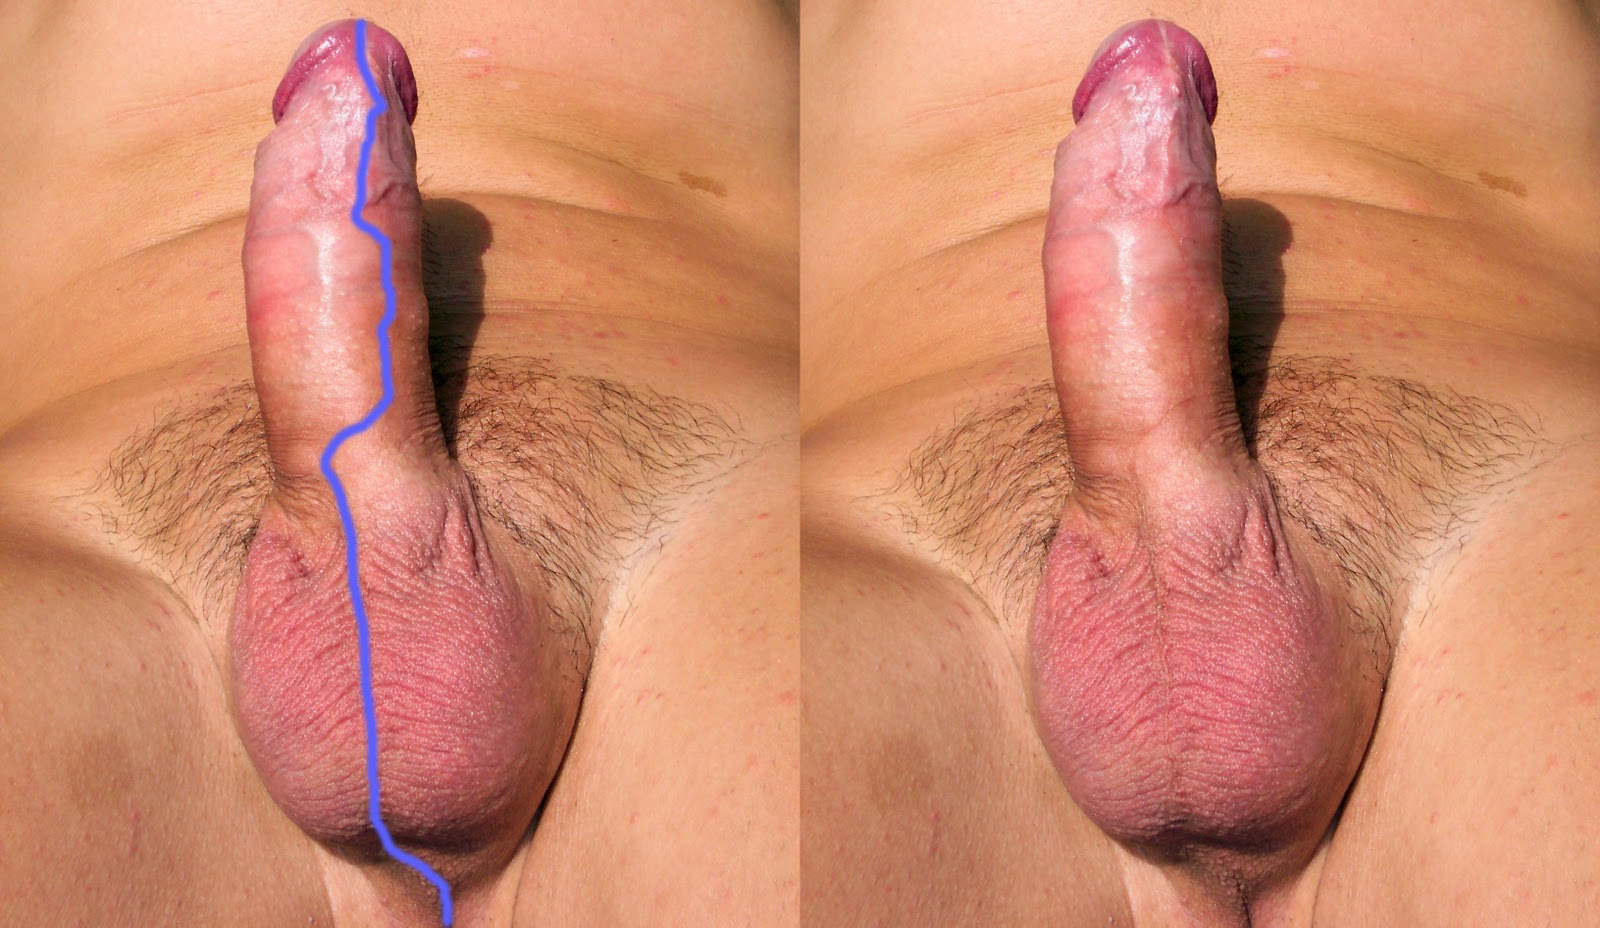 boobs-and-uncircumcised-penis-anal-sex-and